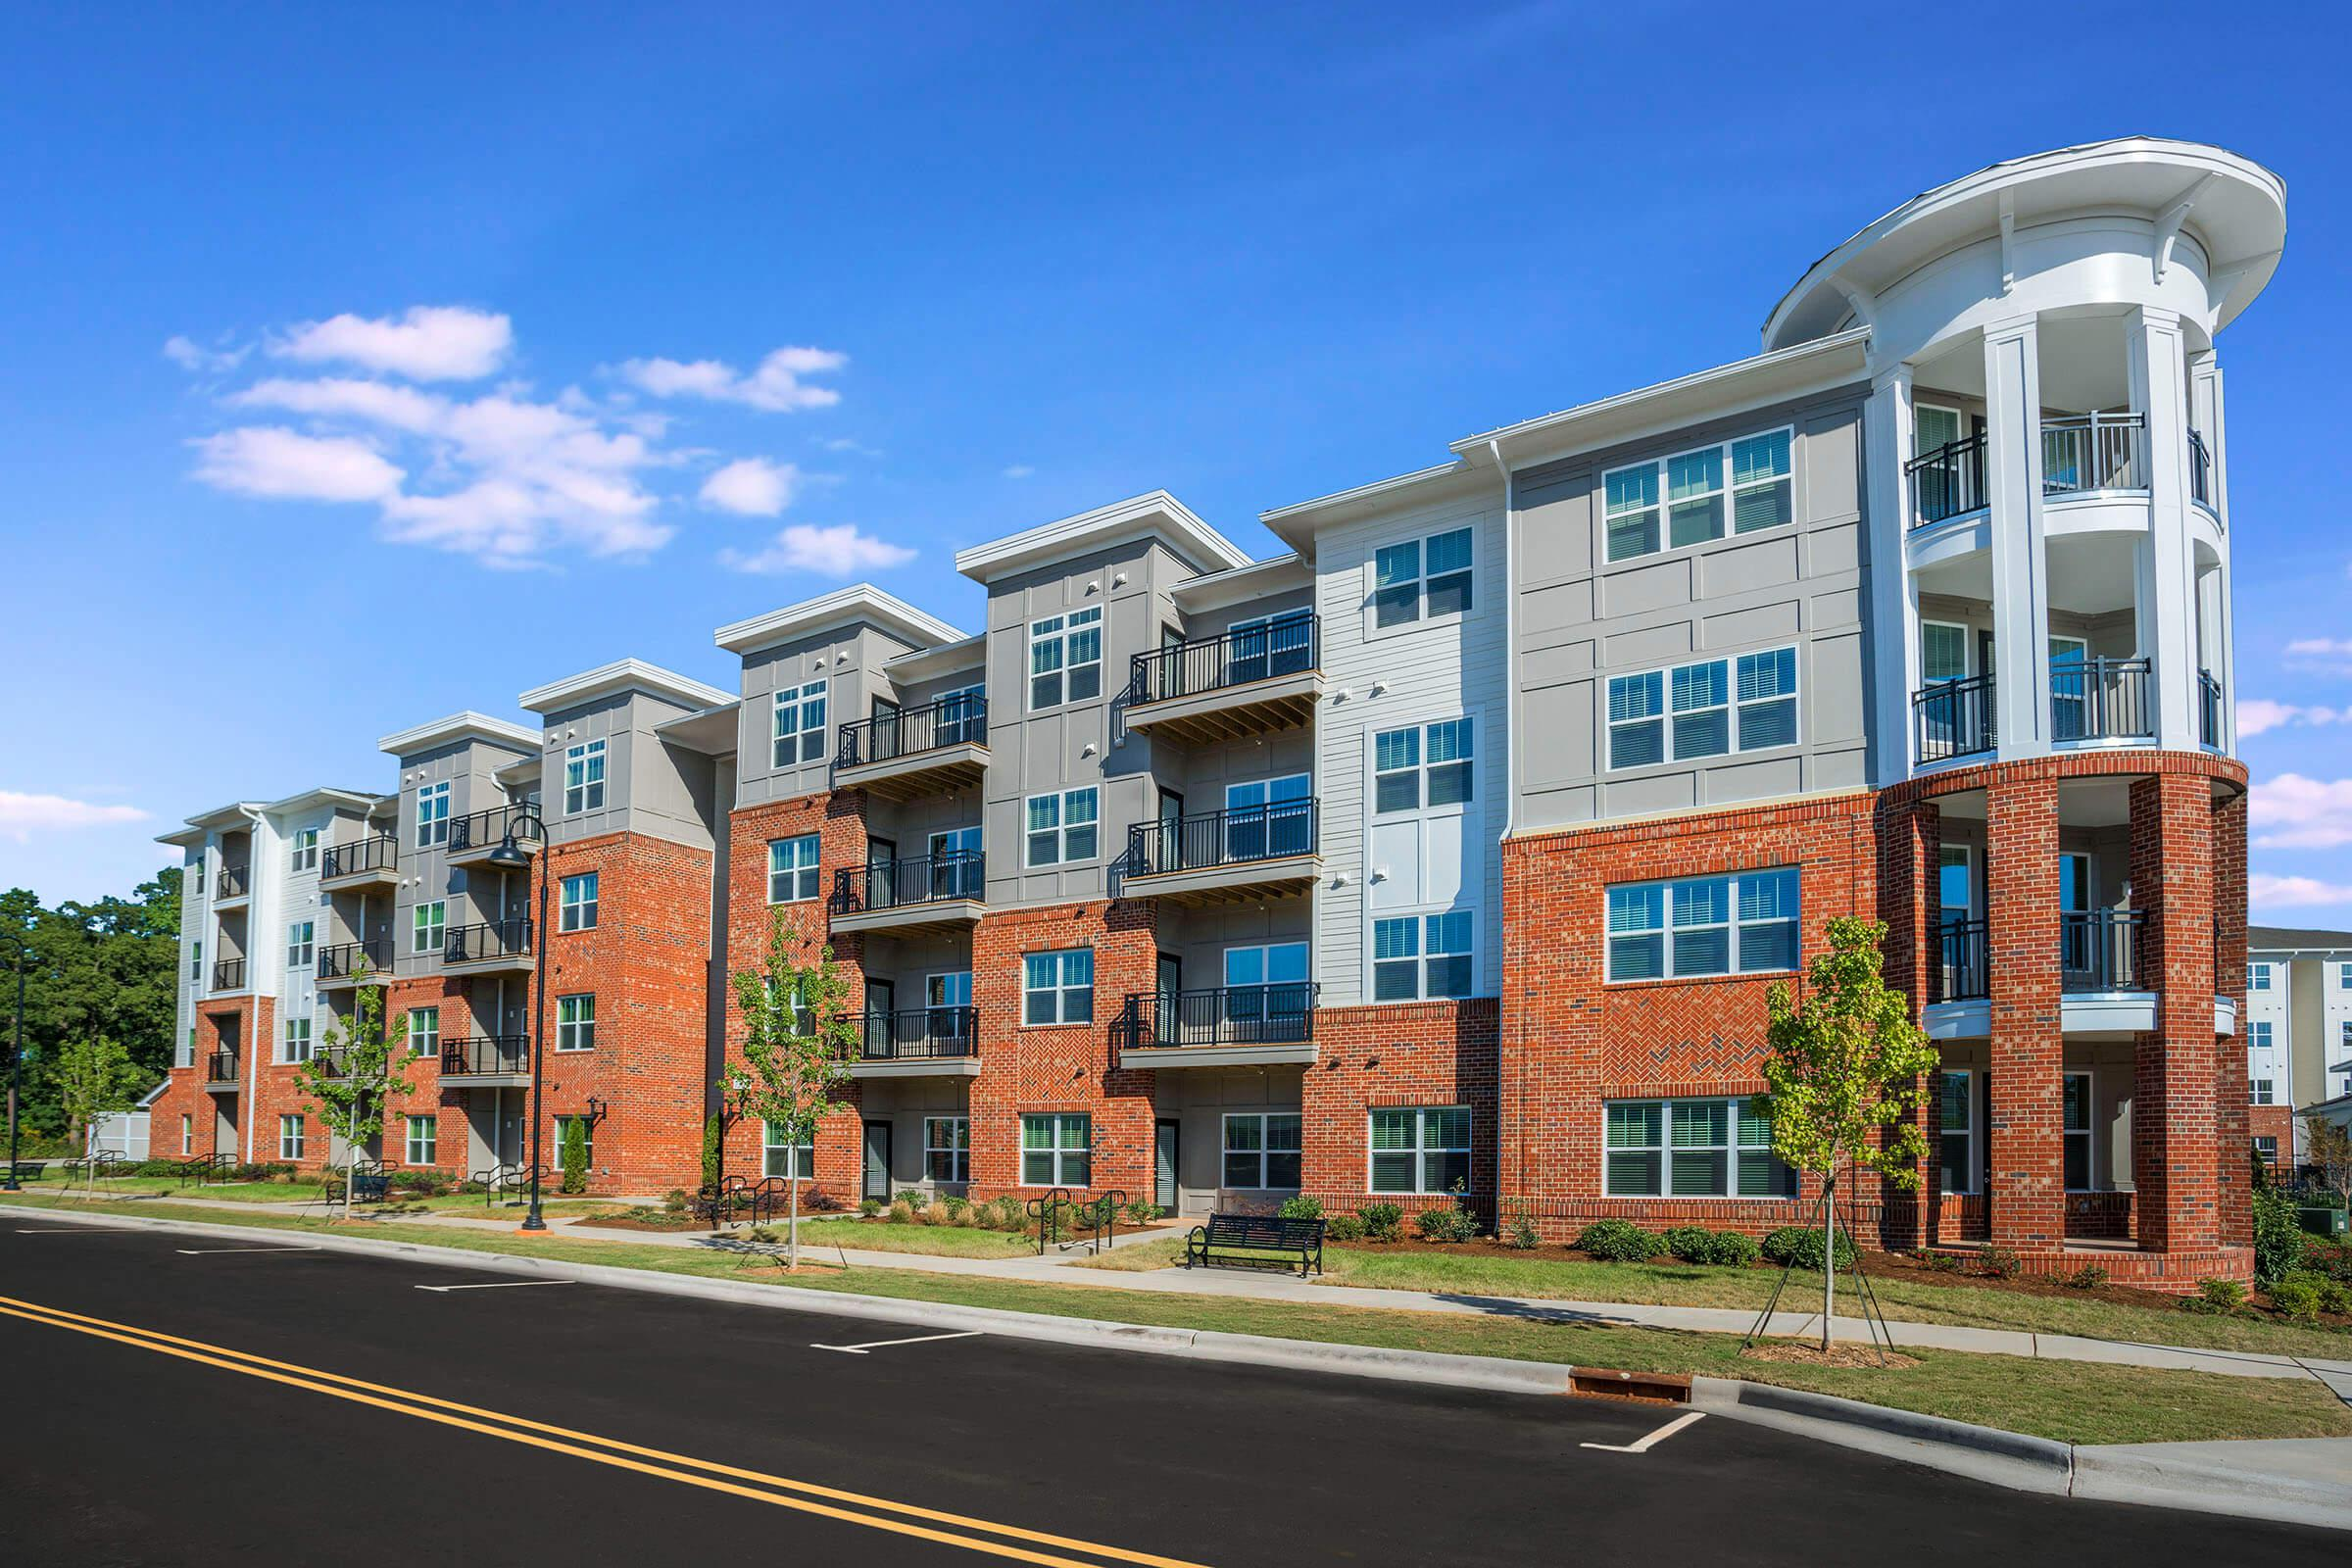 PROSPERITY-VILLAGE-APARTMENTS-CHARLOTTE-NC-EXTERIOR-07.jpg